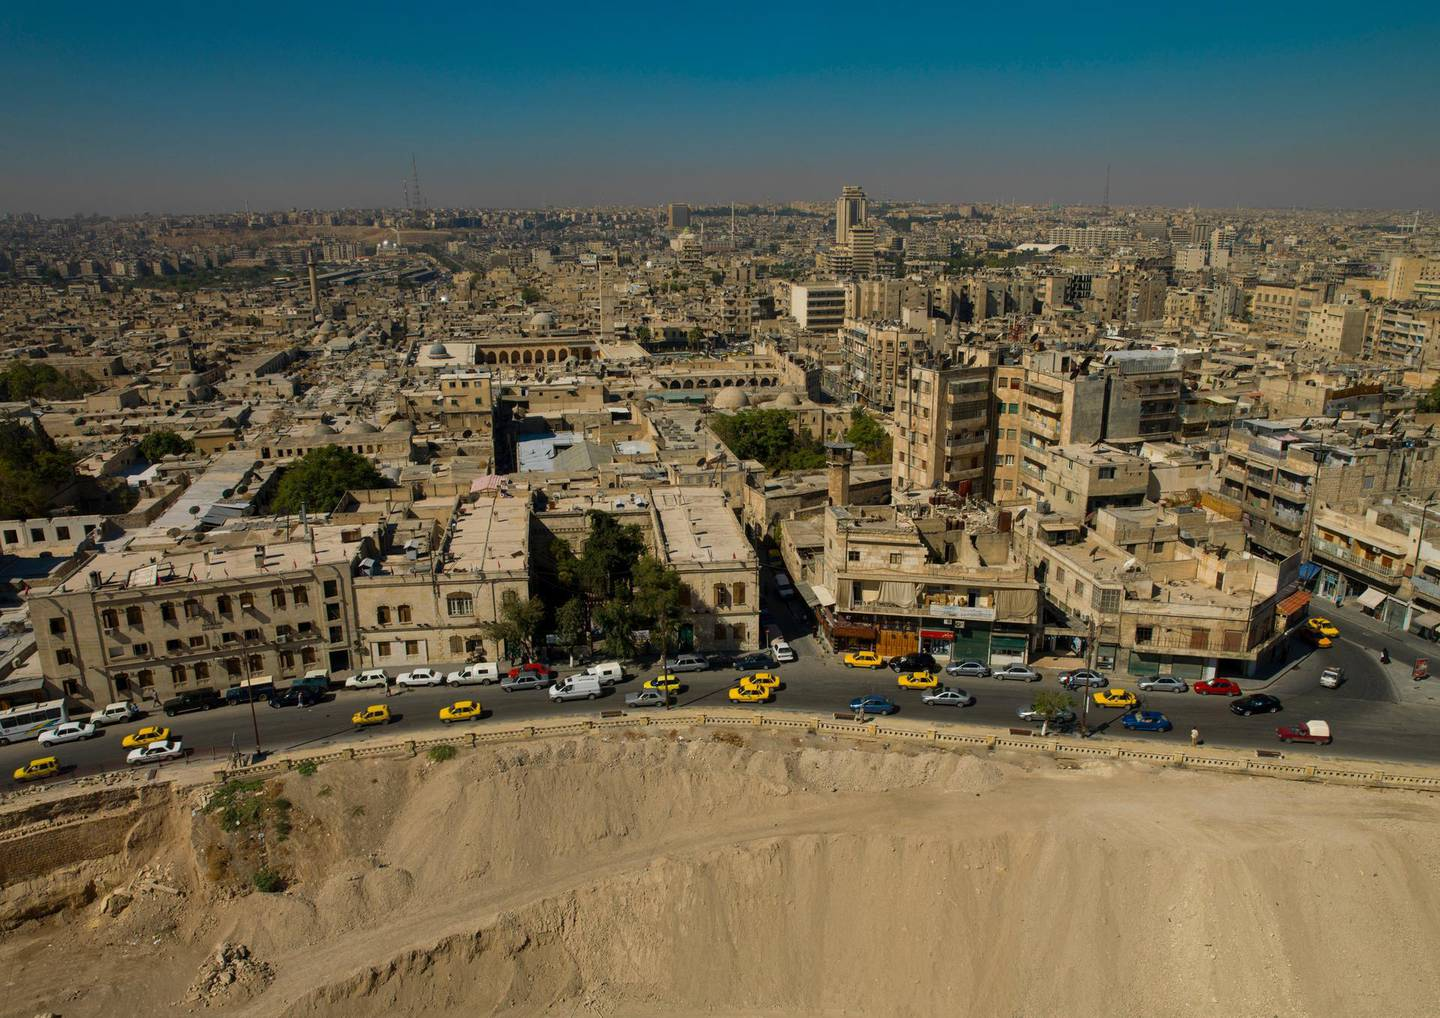 October 5, 2006. High Angle View From Citadel, Aleppo, Aleppo Governorate, Syria. Reuters